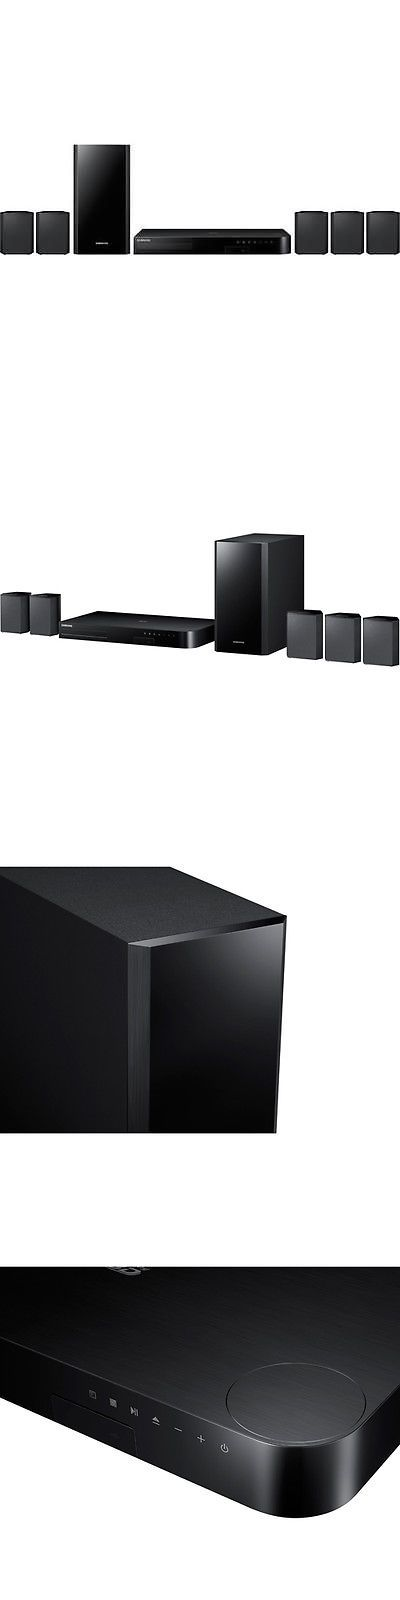 Home Theater Systems: Samsung Ht-J4500 Za 500 Watt 5.1 Channel 3D Blu-Ray Home Theater System -> BUY IT NOW ONLY: $184.88 on eBay!